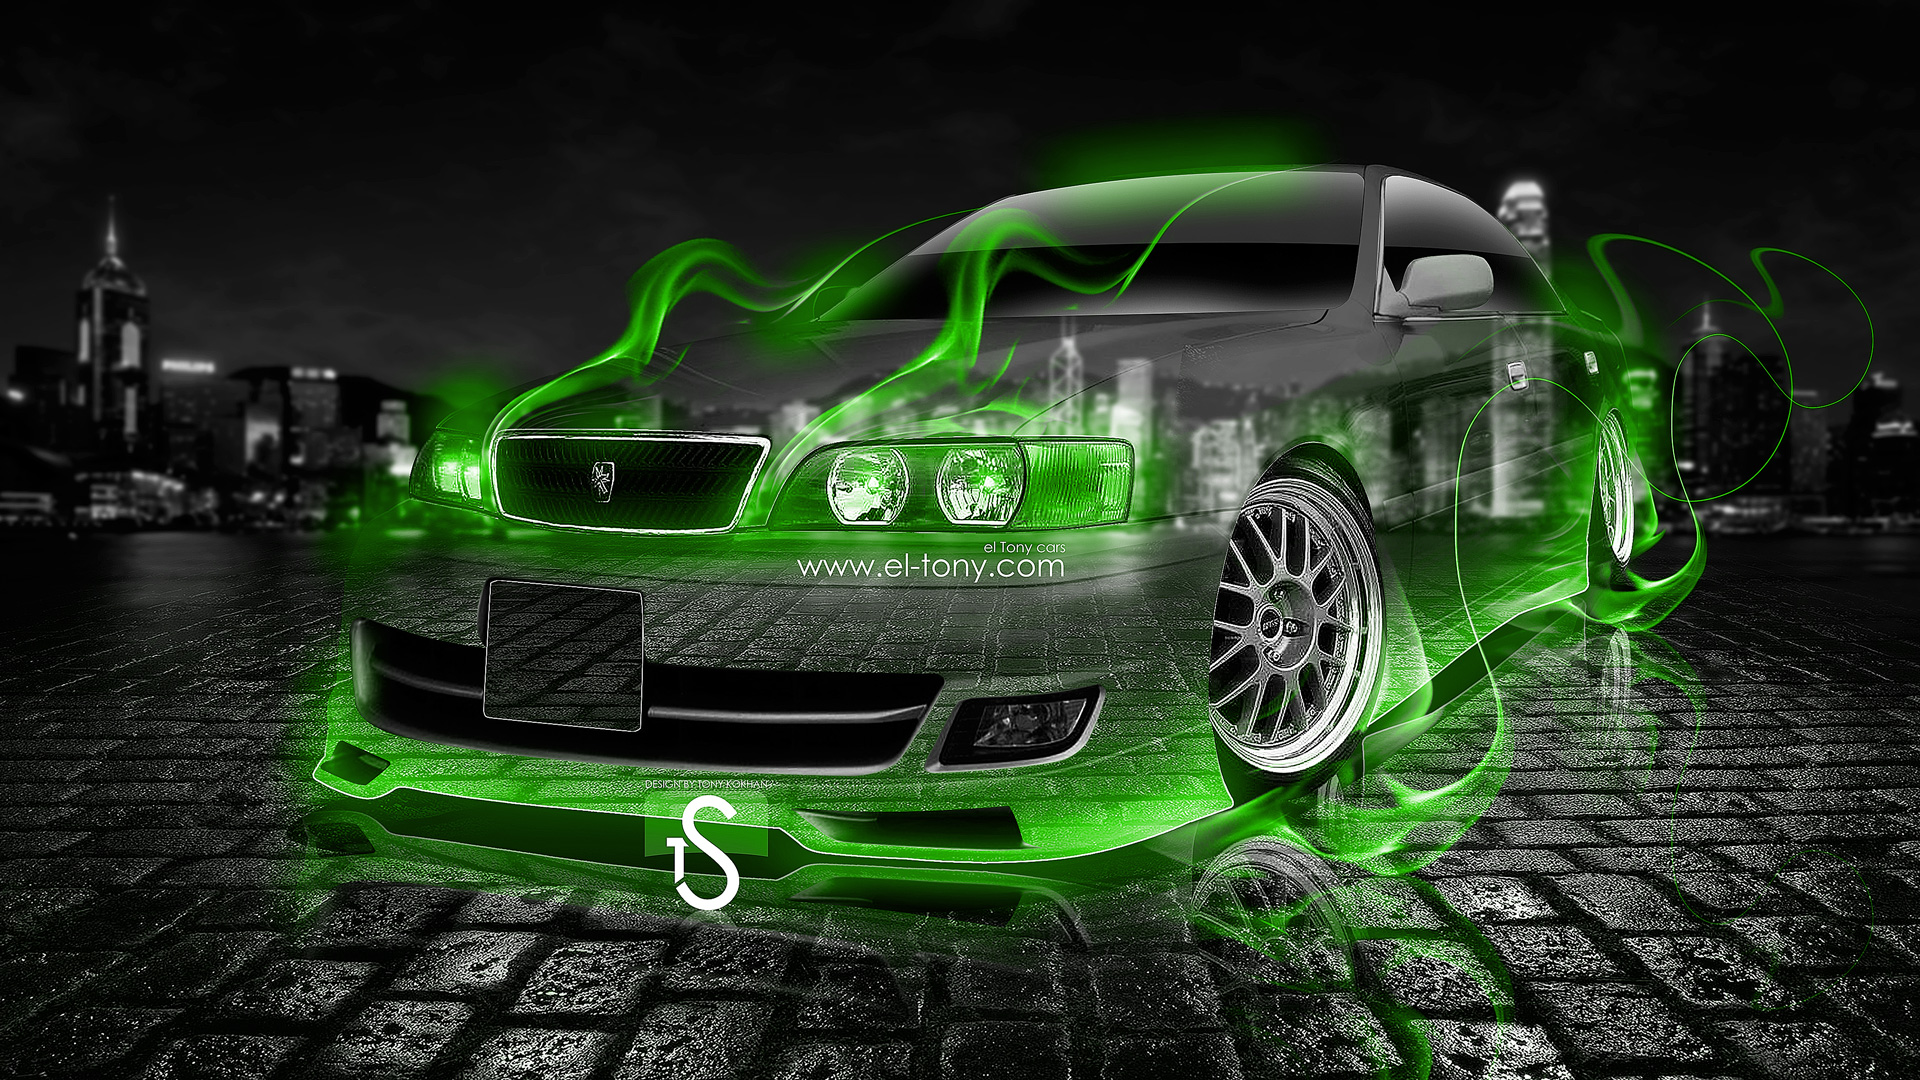 Toyota Chaser JZX100 JDM Green Fire Crystal Car .